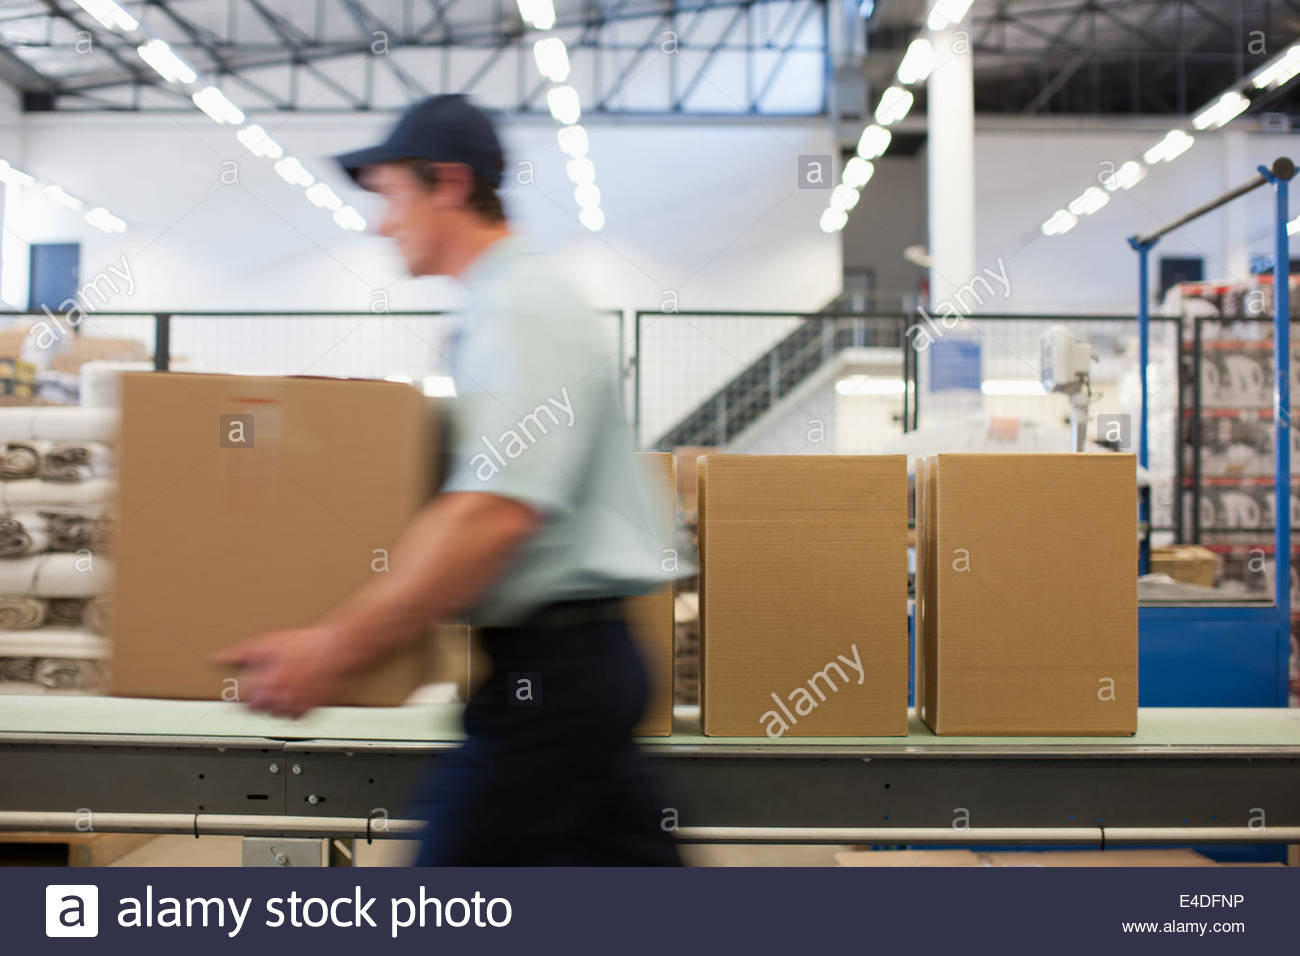 Worker carrying box in shipping area Stock Photo